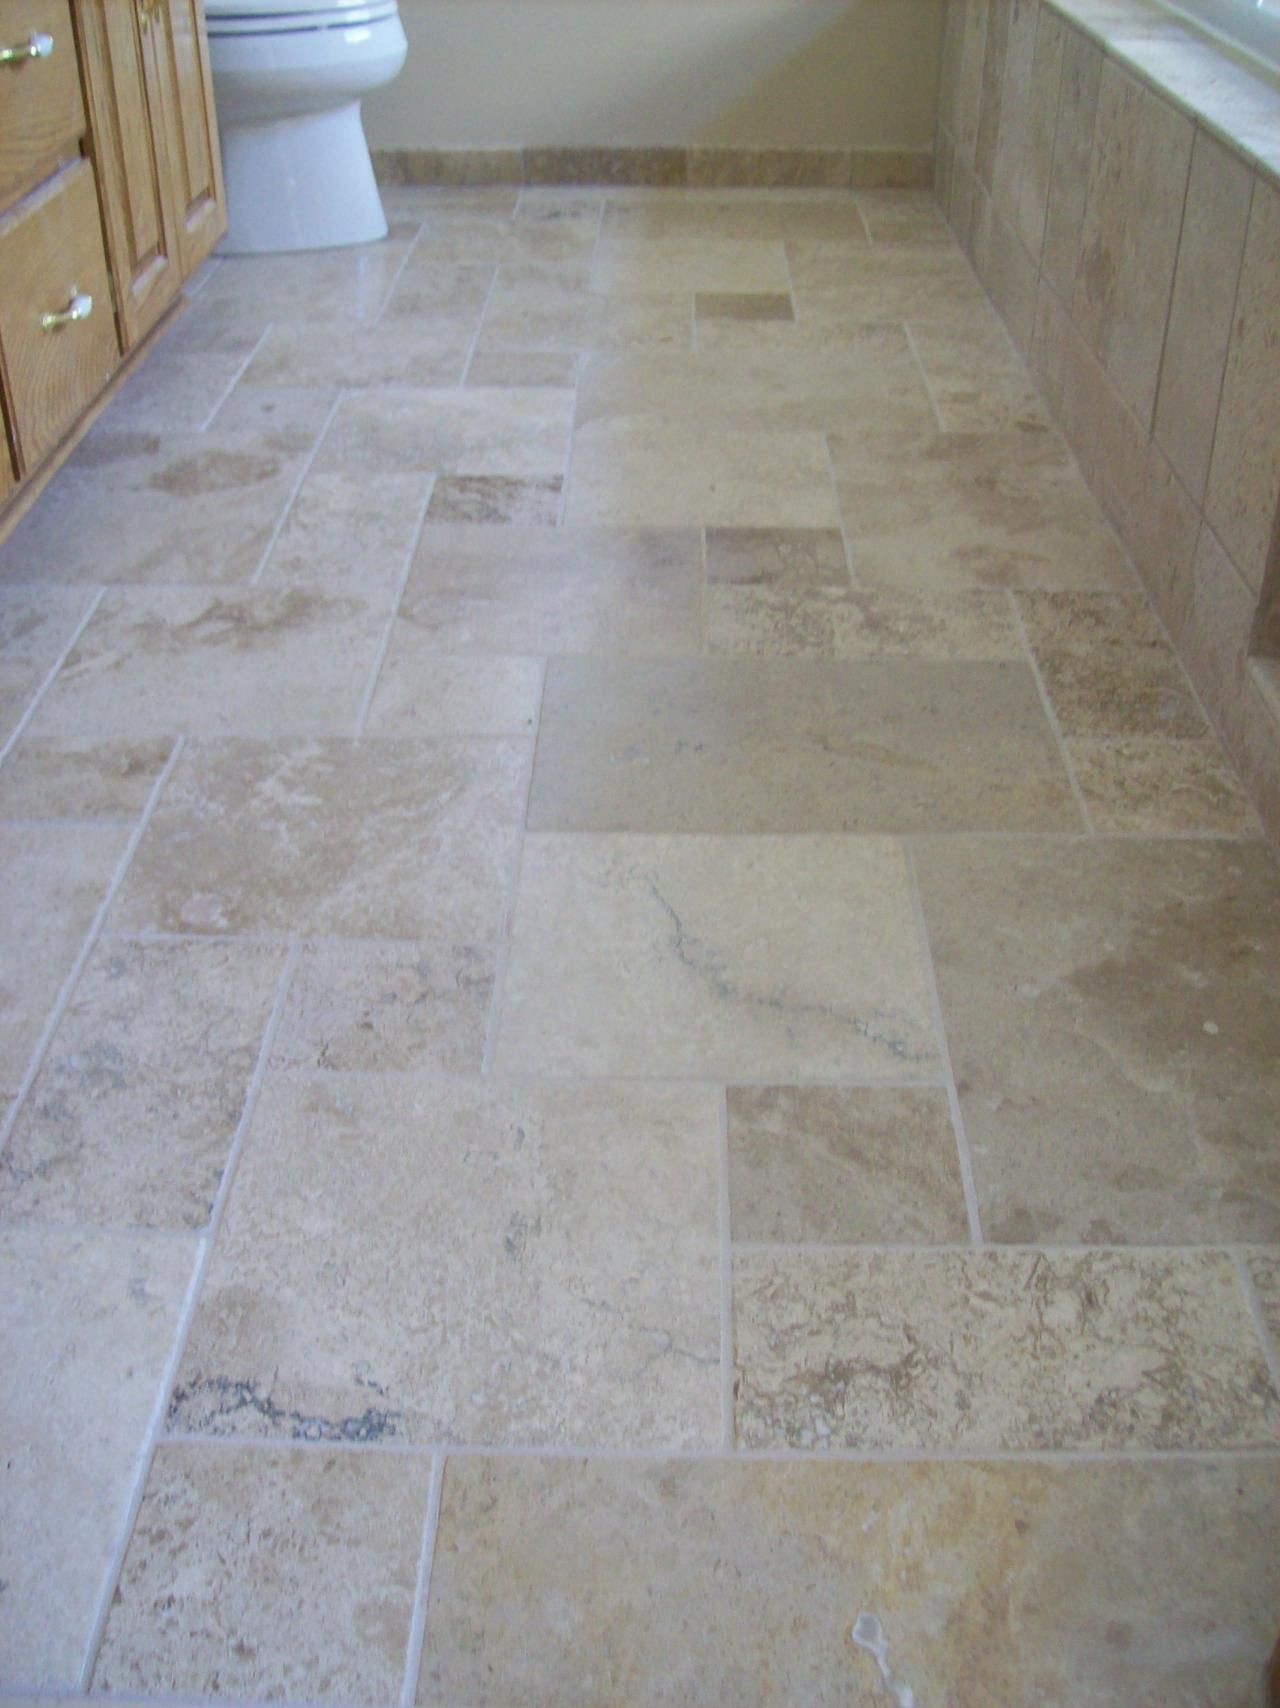 Sandstone Kitchen Floor Tiles Herringbone Tile Floor Bathroom Inspirations Pinterest